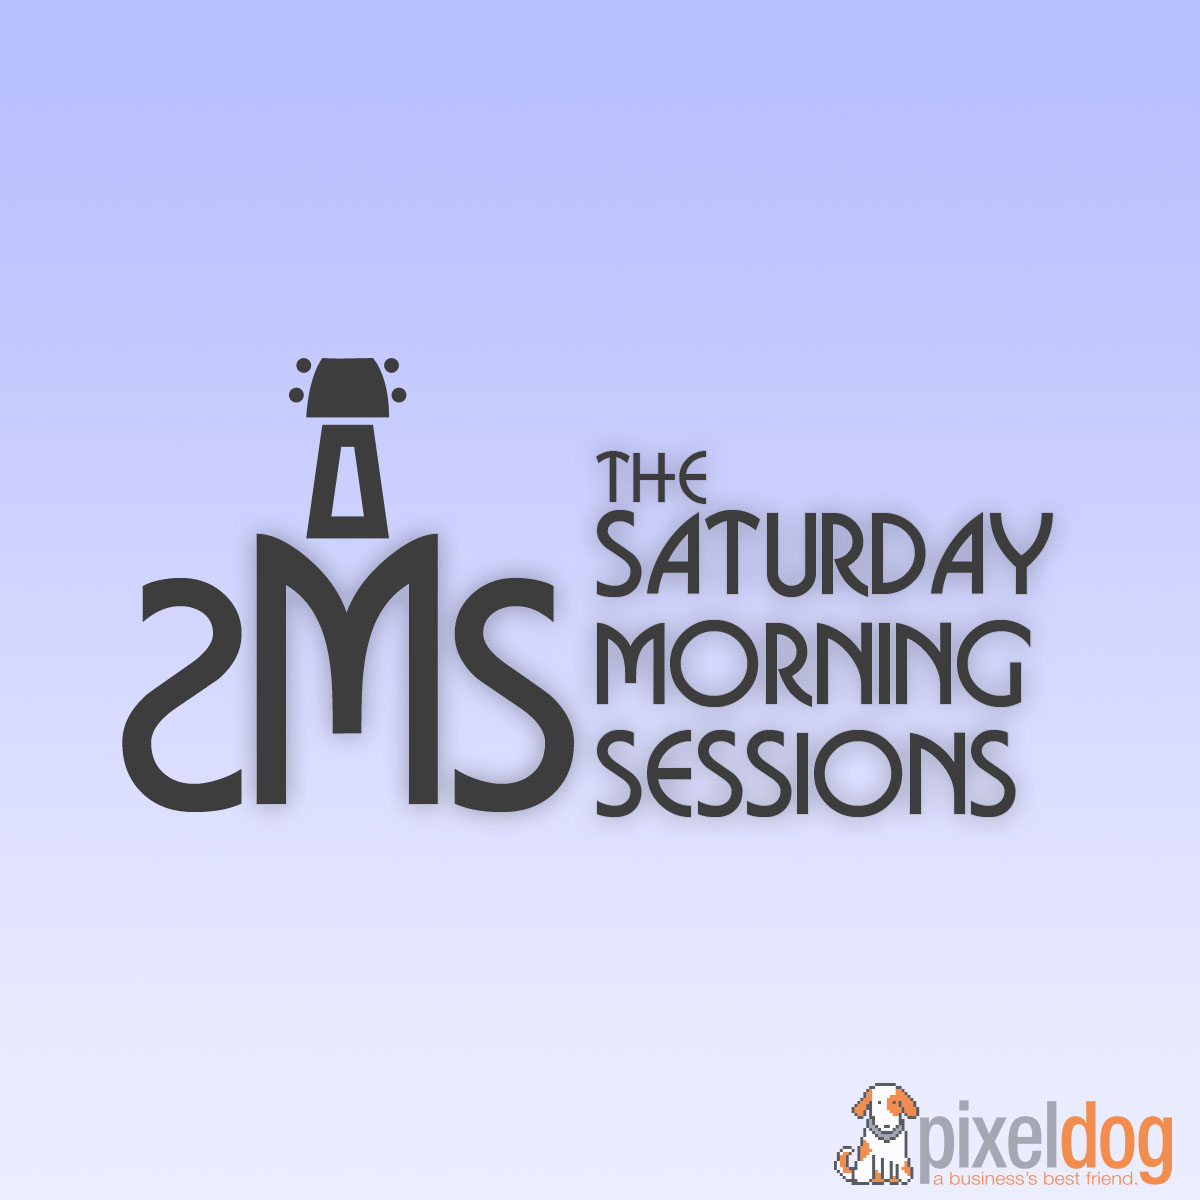 Saturday Morning Sessions (Series)